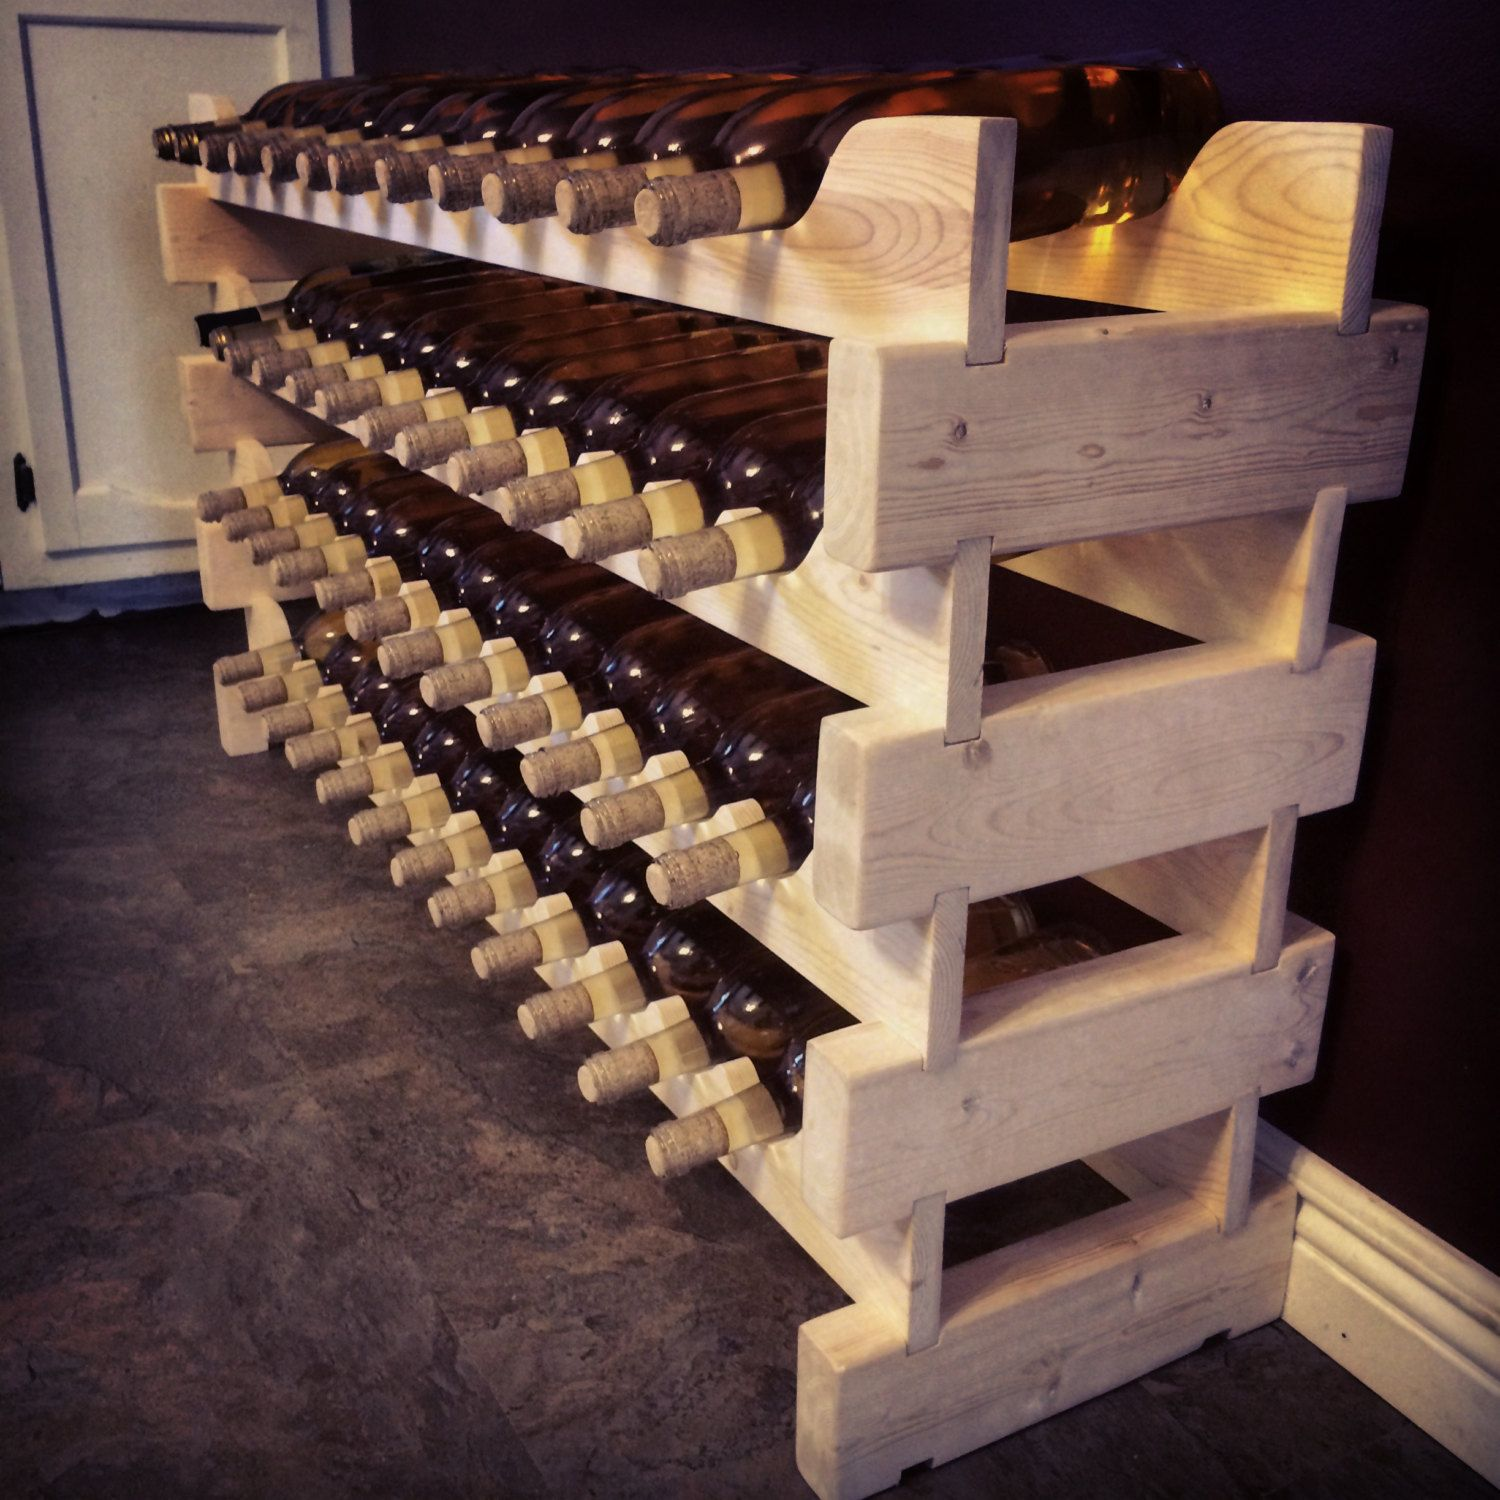 sale 72 bottle wine rack this freestanding stackable wine rack is handcrafted with pride